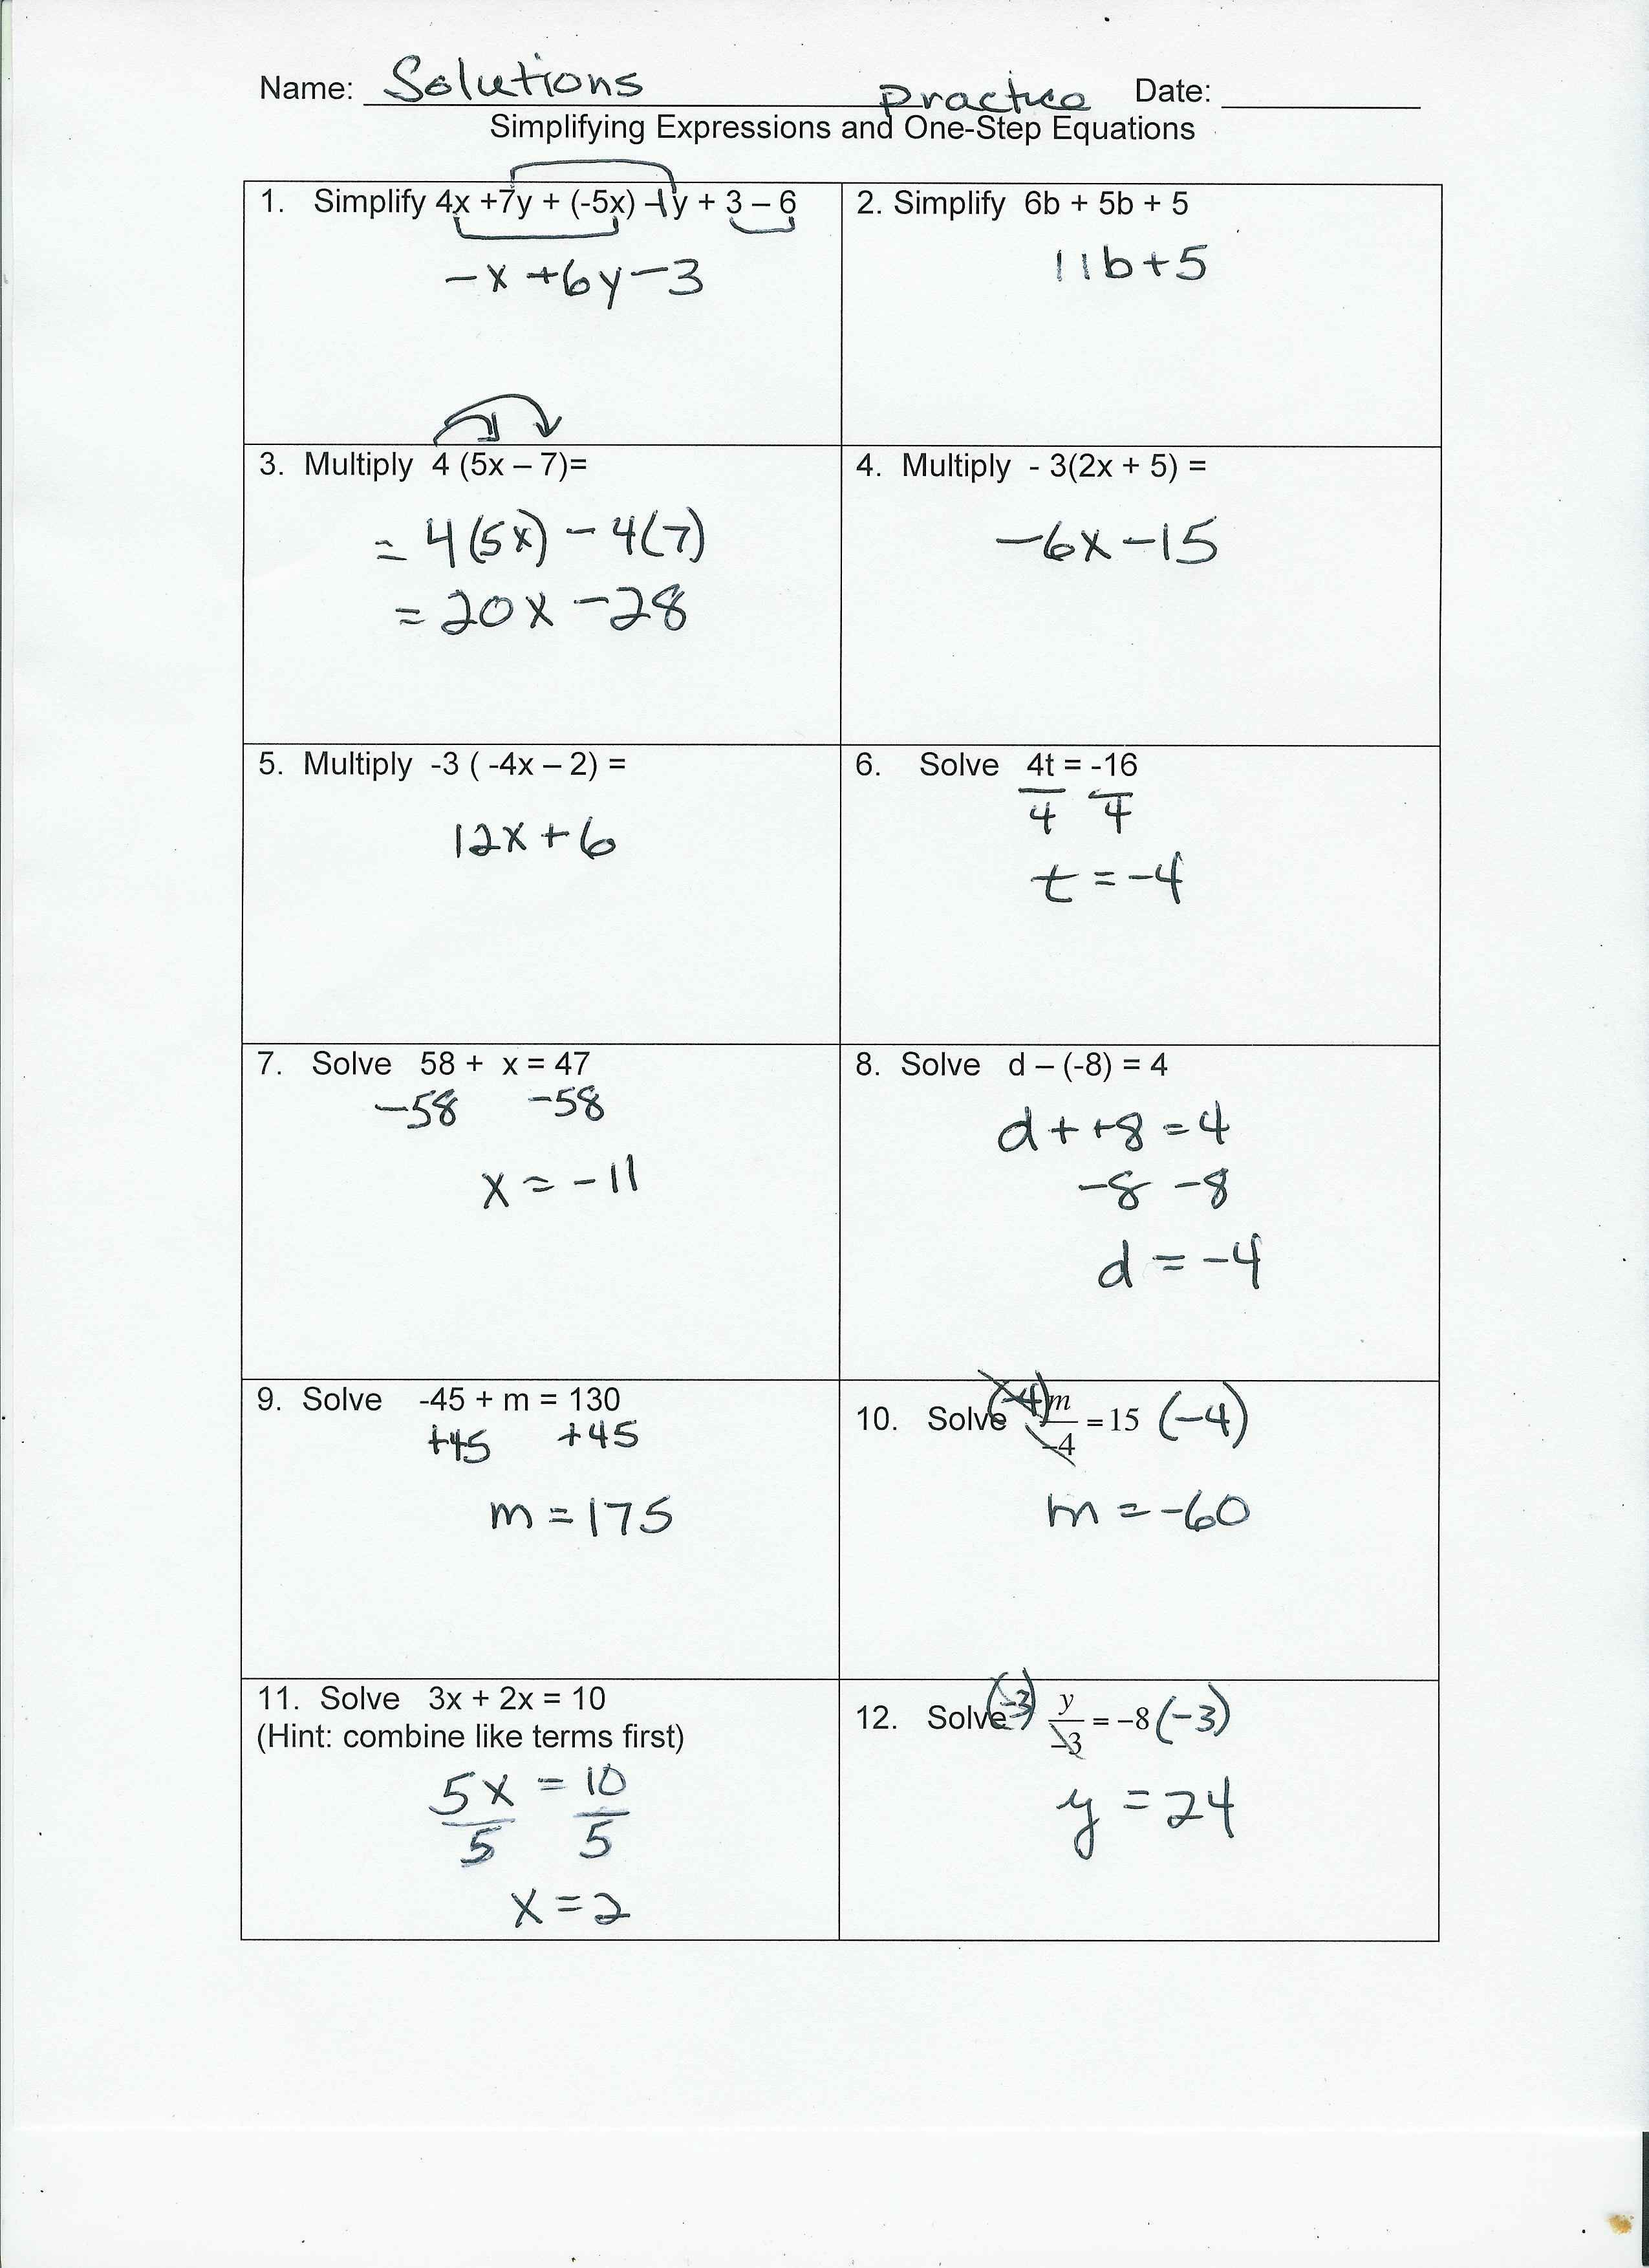 Best Site Cant Pin Because Blocked From Pinterest But The Link Is Ht One Step Equations Algebra Equations Worksheets Multi Step Equations Worksheets